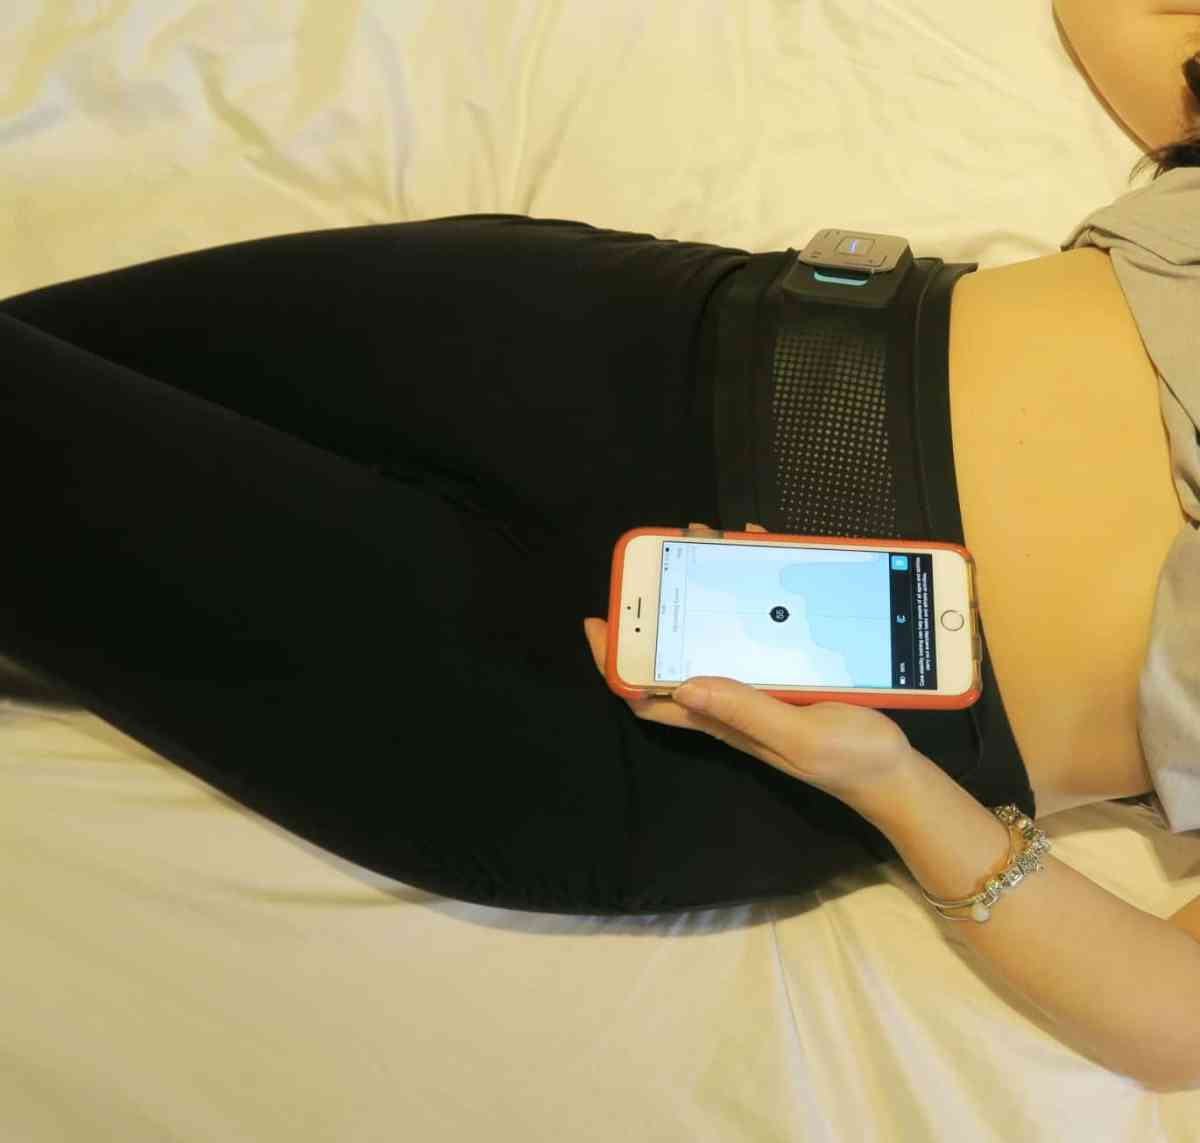 Mobile phone controlling the Slendertone connect